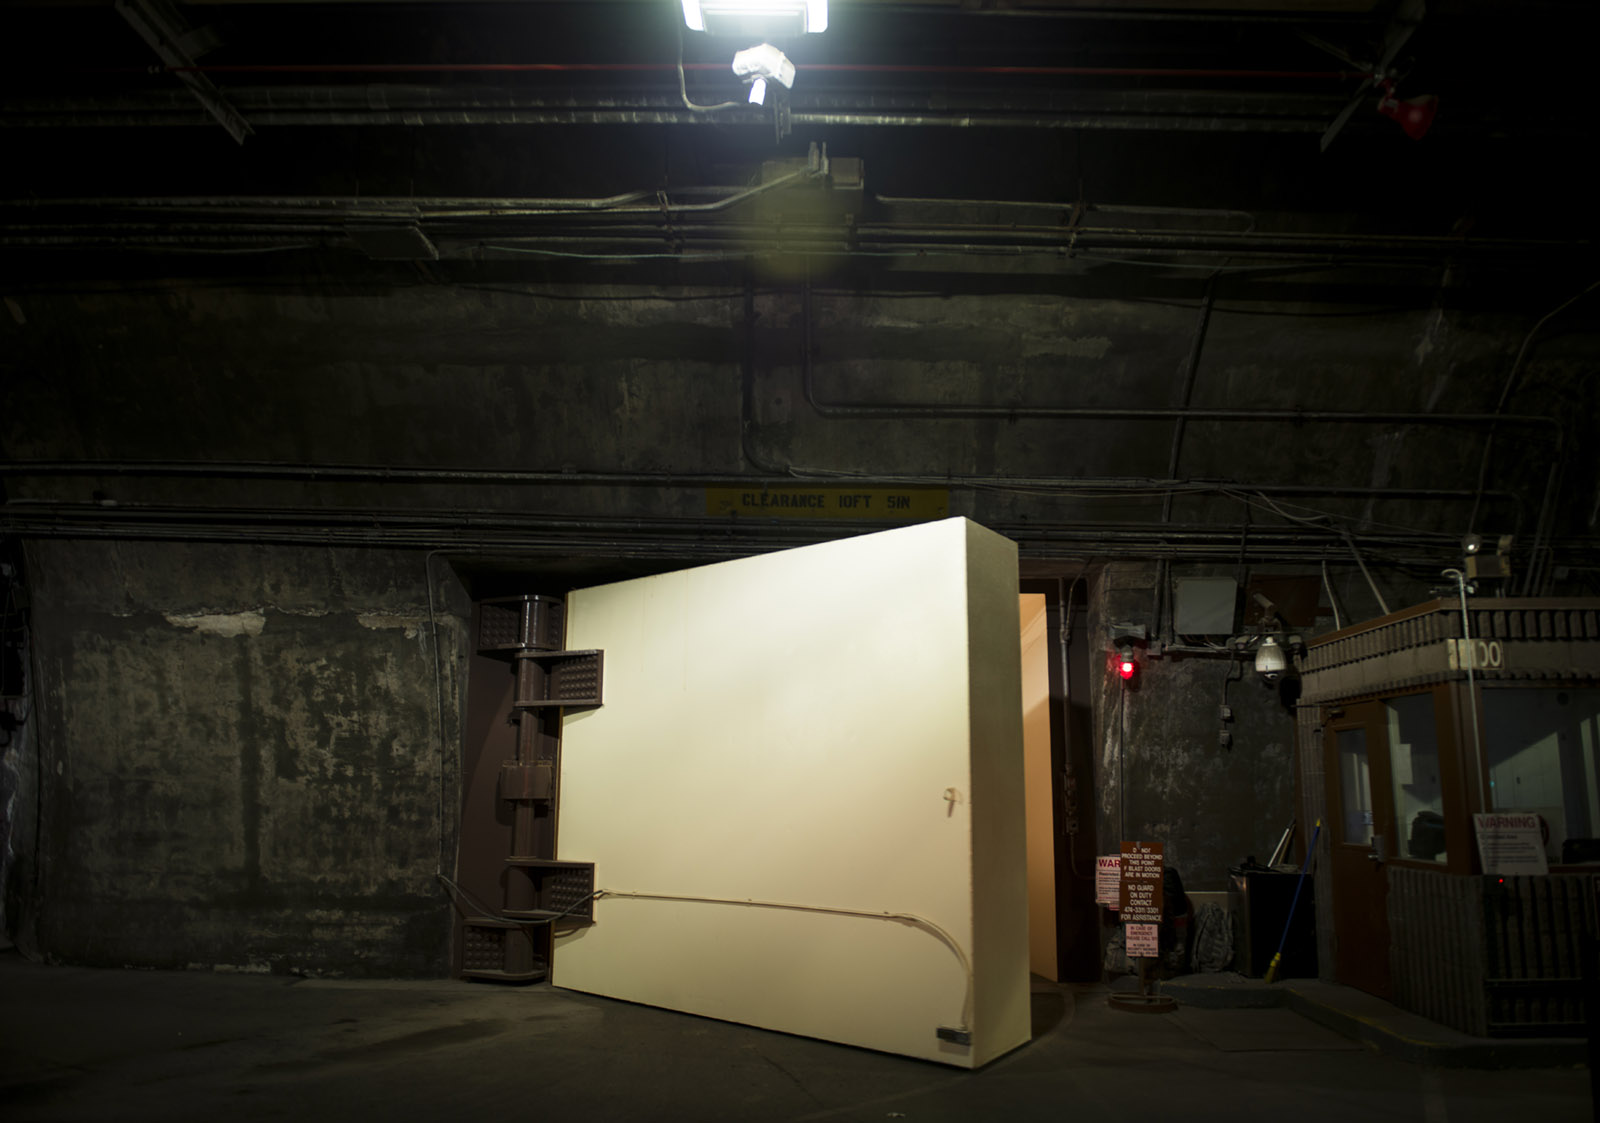 A very thick, large, cream-colored, metal door stands ajar in a dimly lit, underground cavern whose walls are covered in metal sheeting and piping.